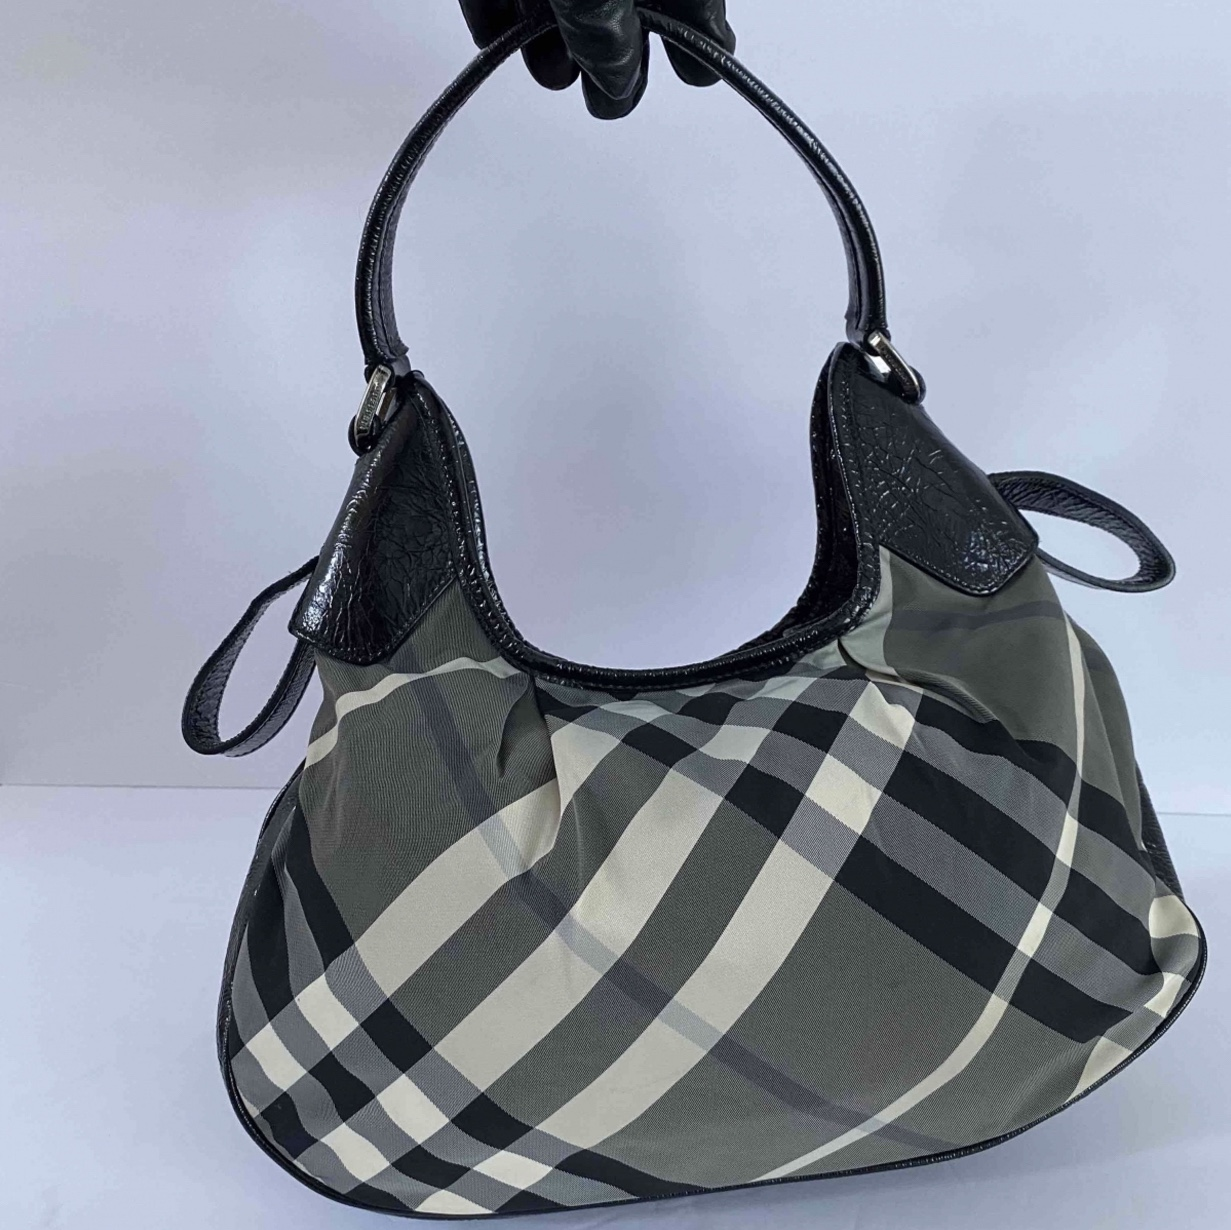 Product Image 1 - Authentic Burberry shoulder bag (reduced